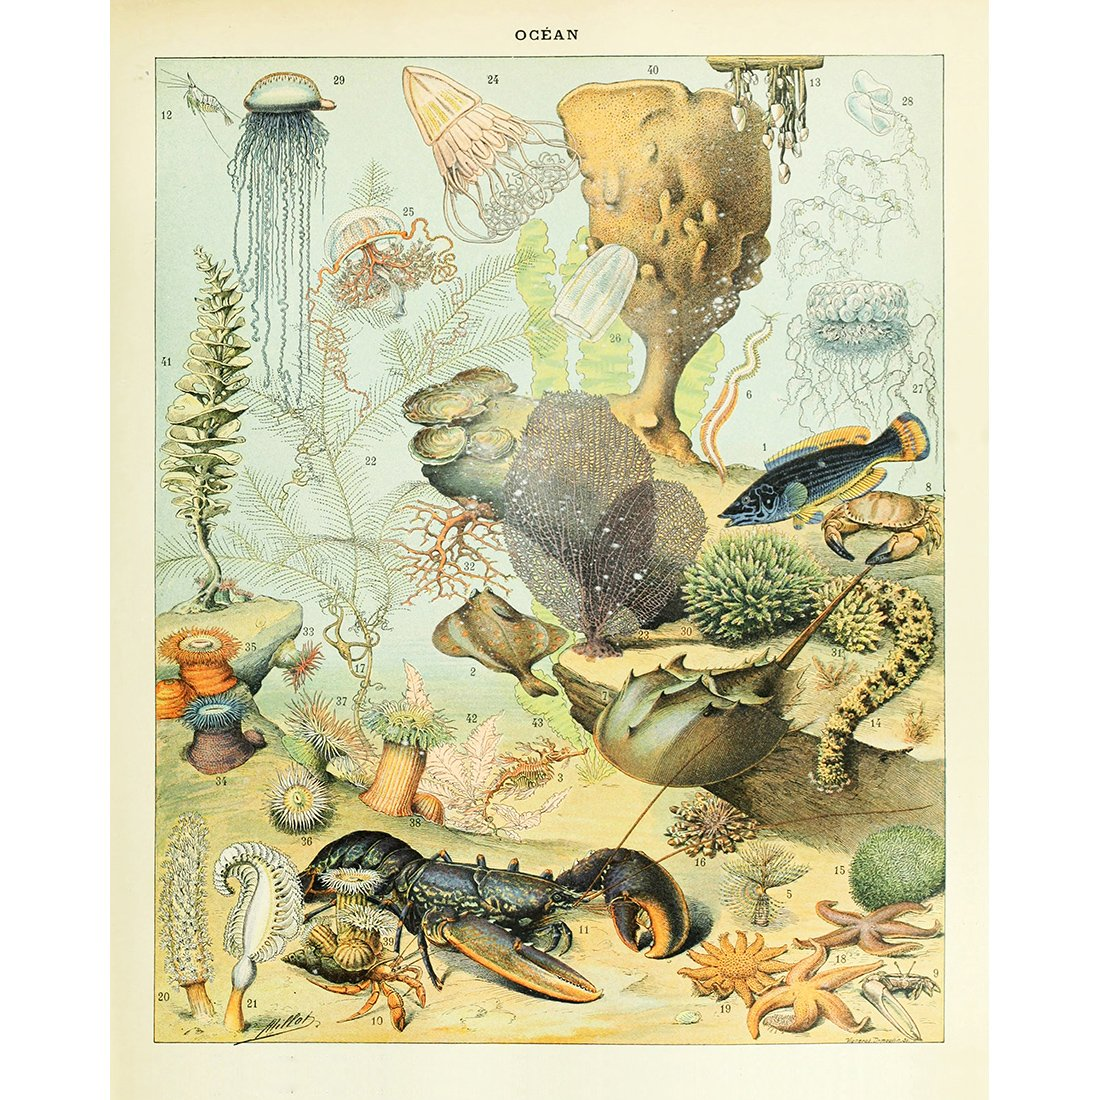 Amazon.com: Meishe Art Vintage Poster Print Biology Botanical ...